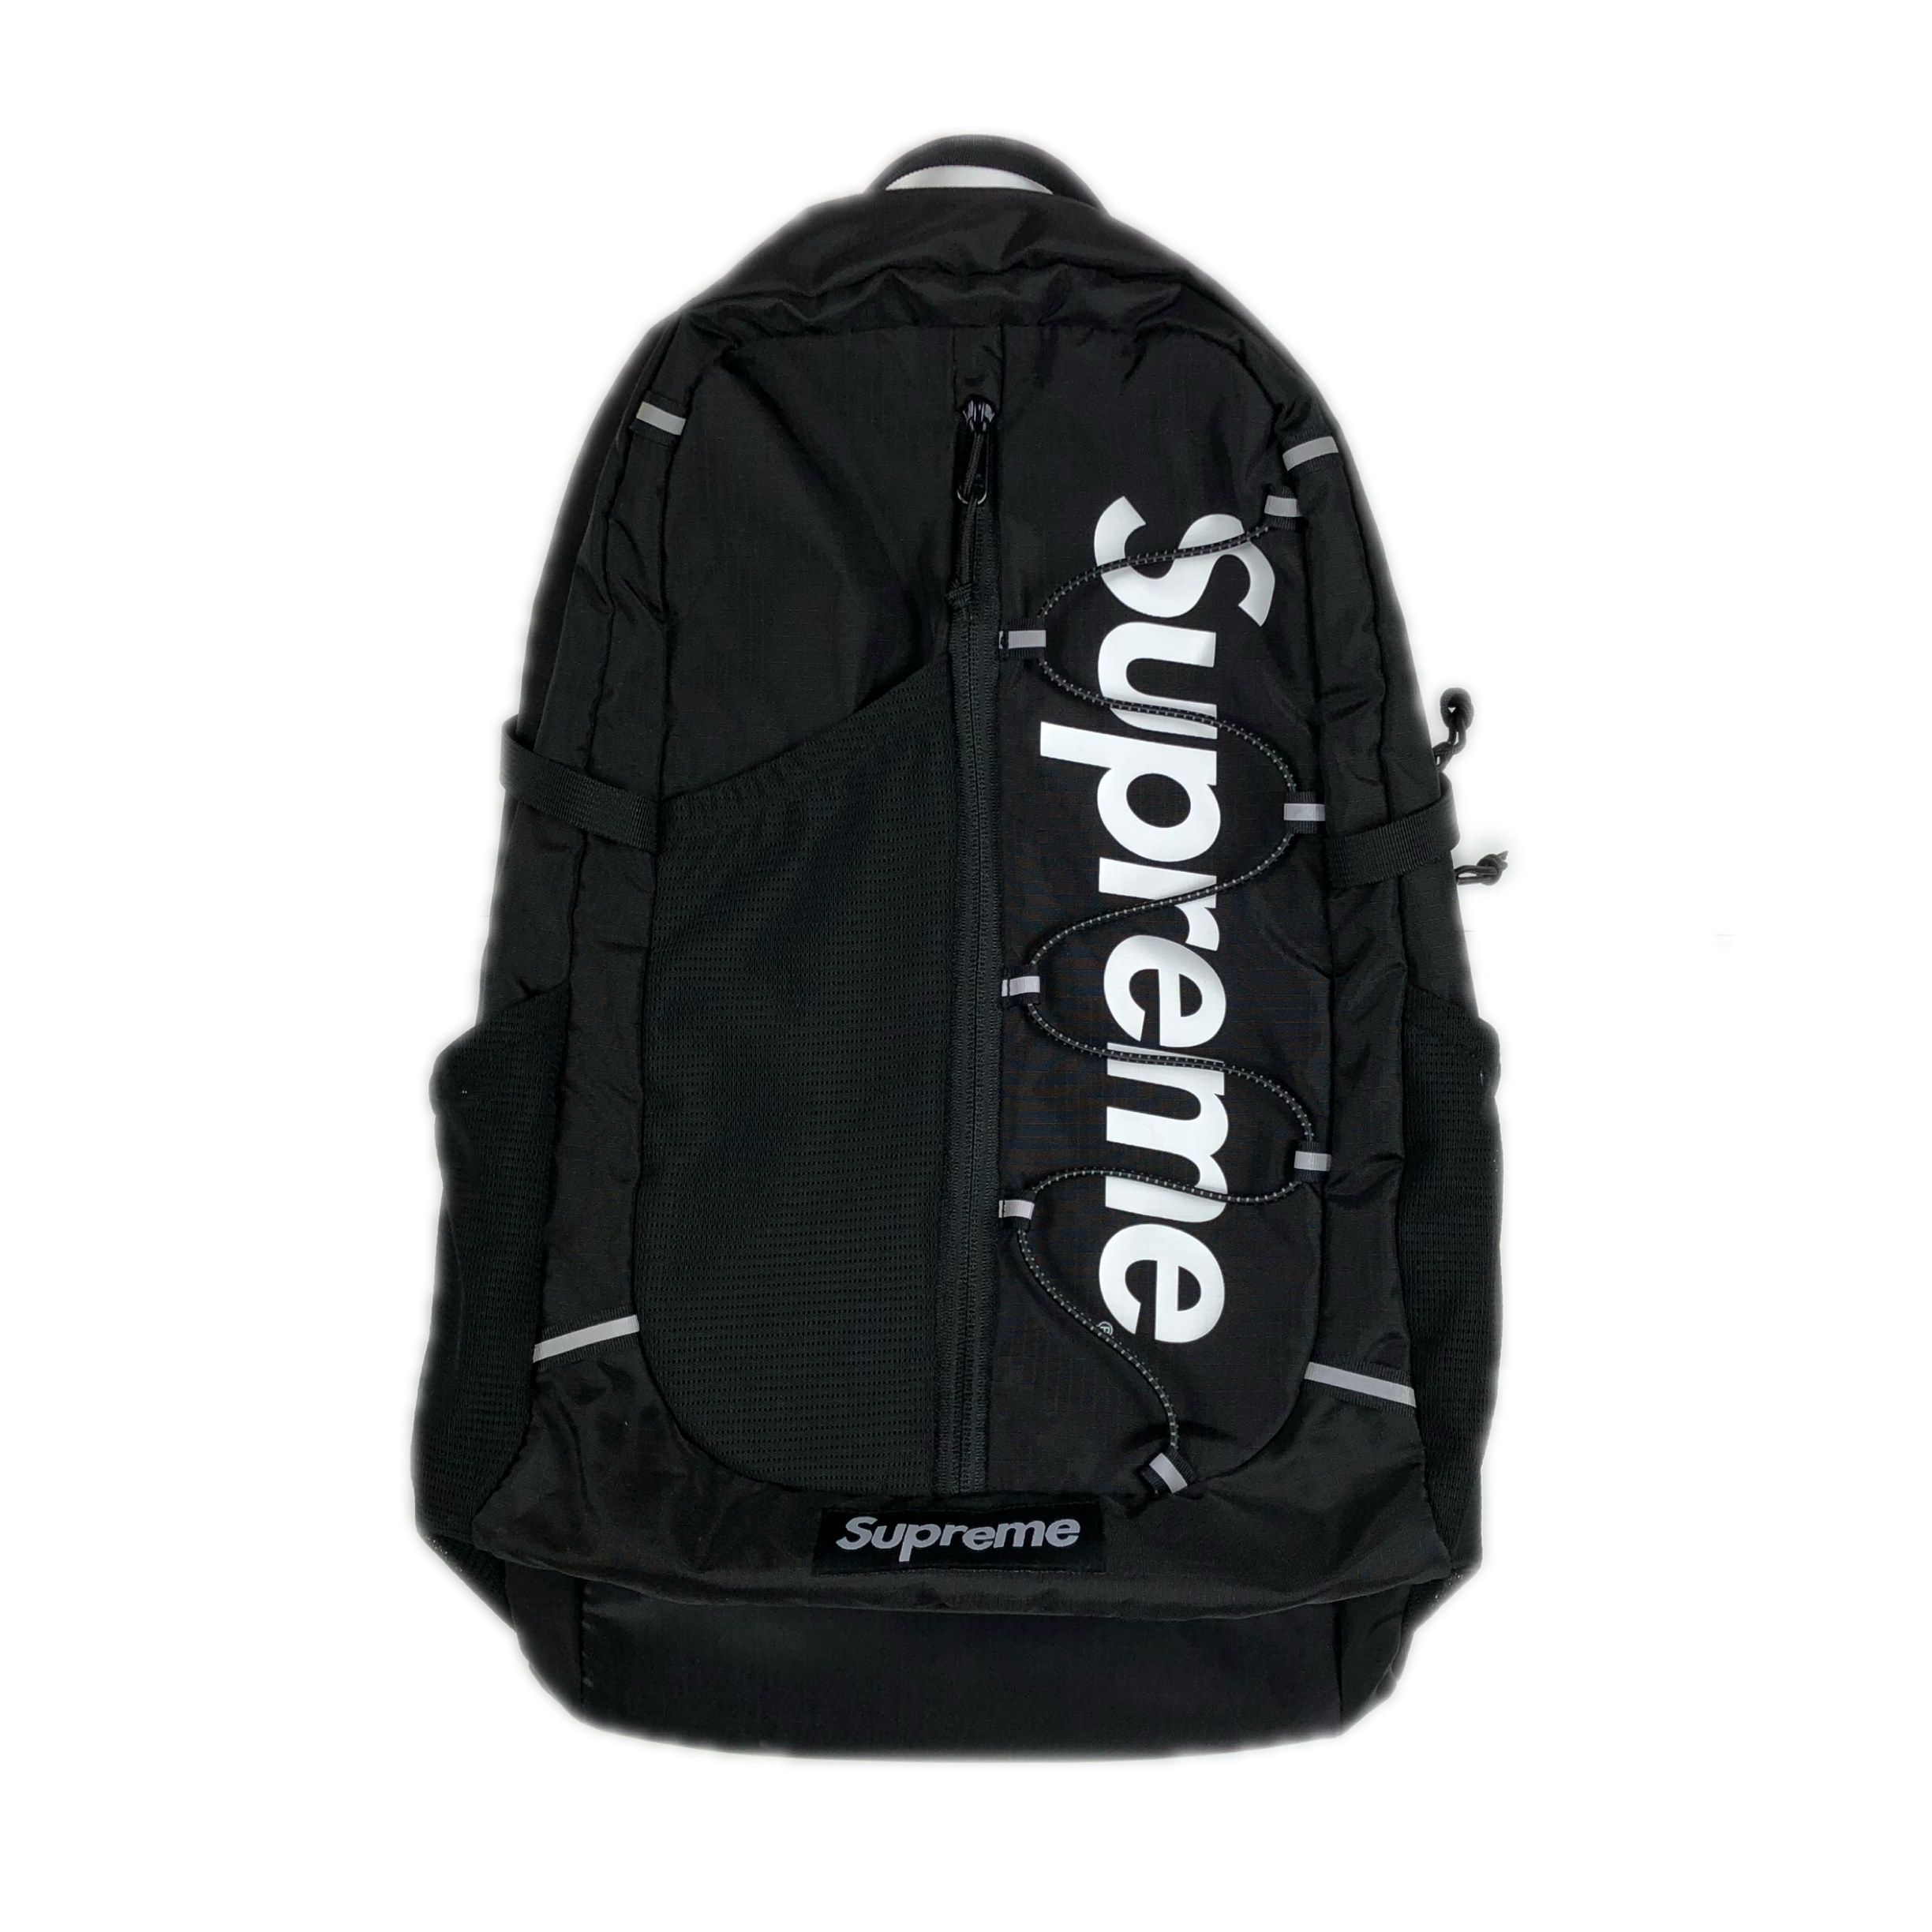 supreme-backpack-black-17ss